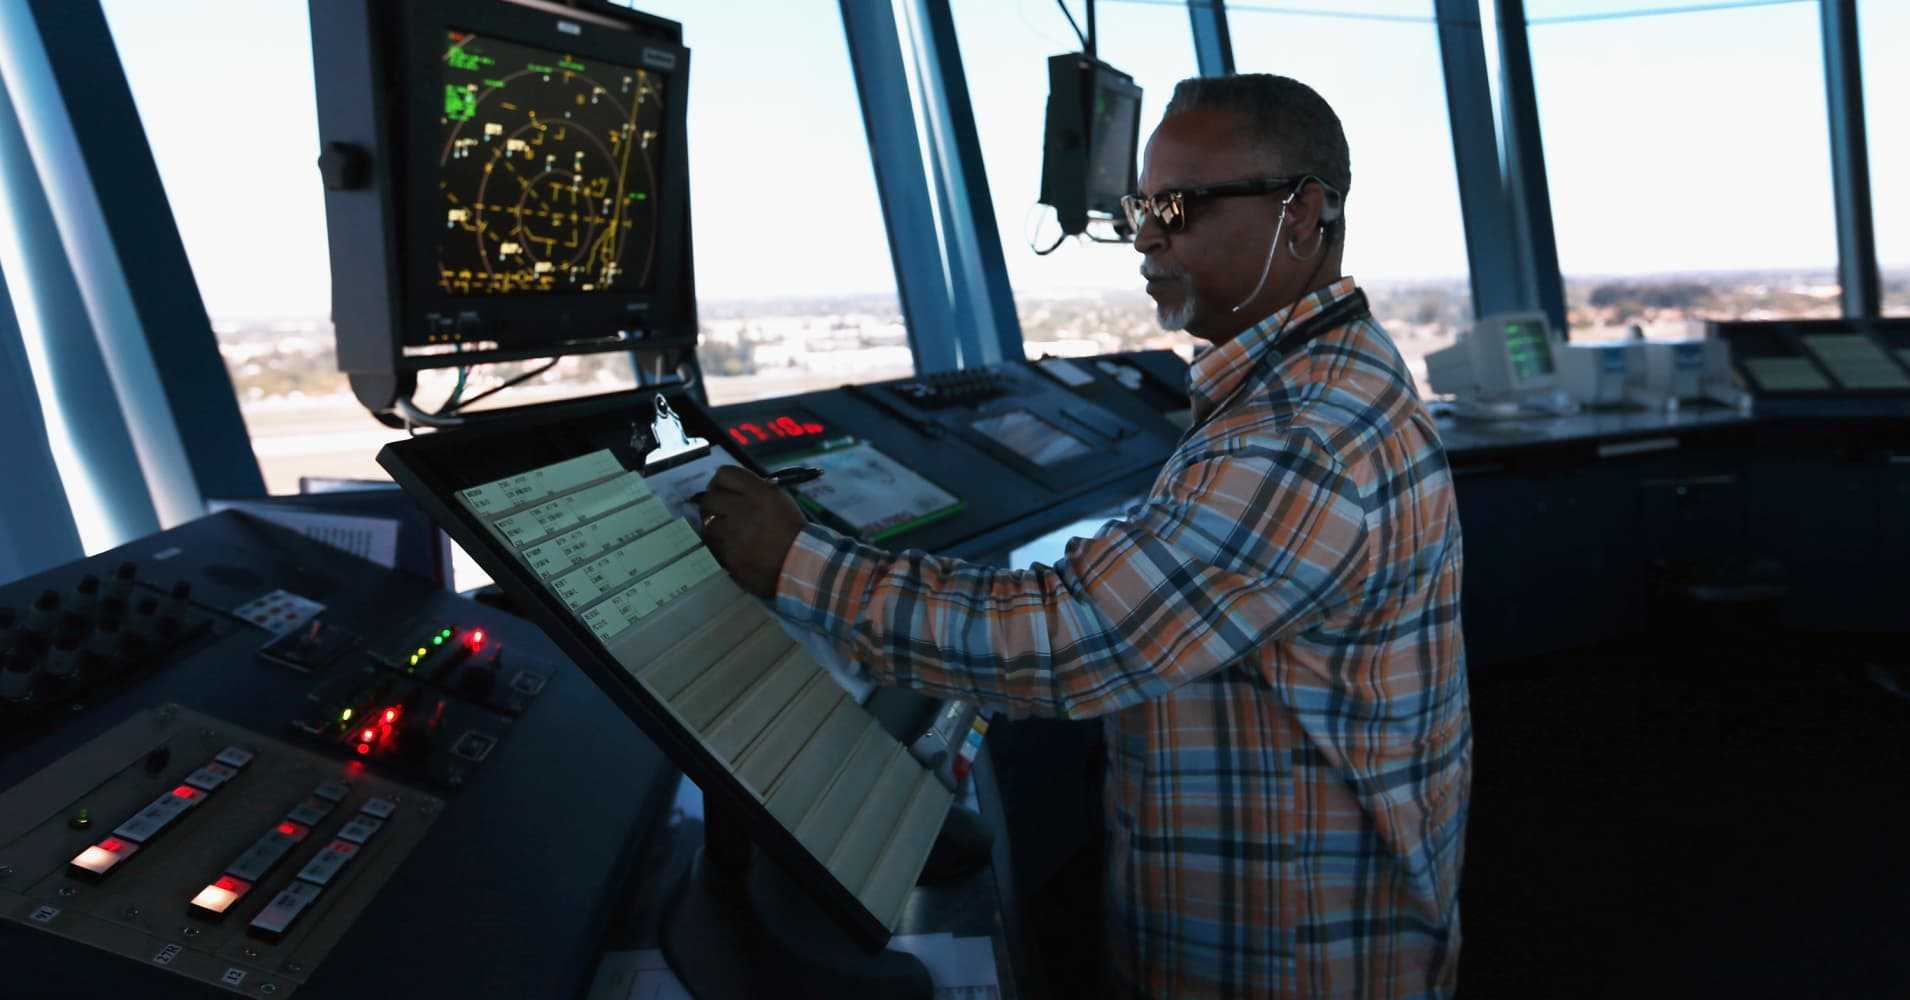 Air traffic controllers union sues Trump administration over frozen pay during shutdown